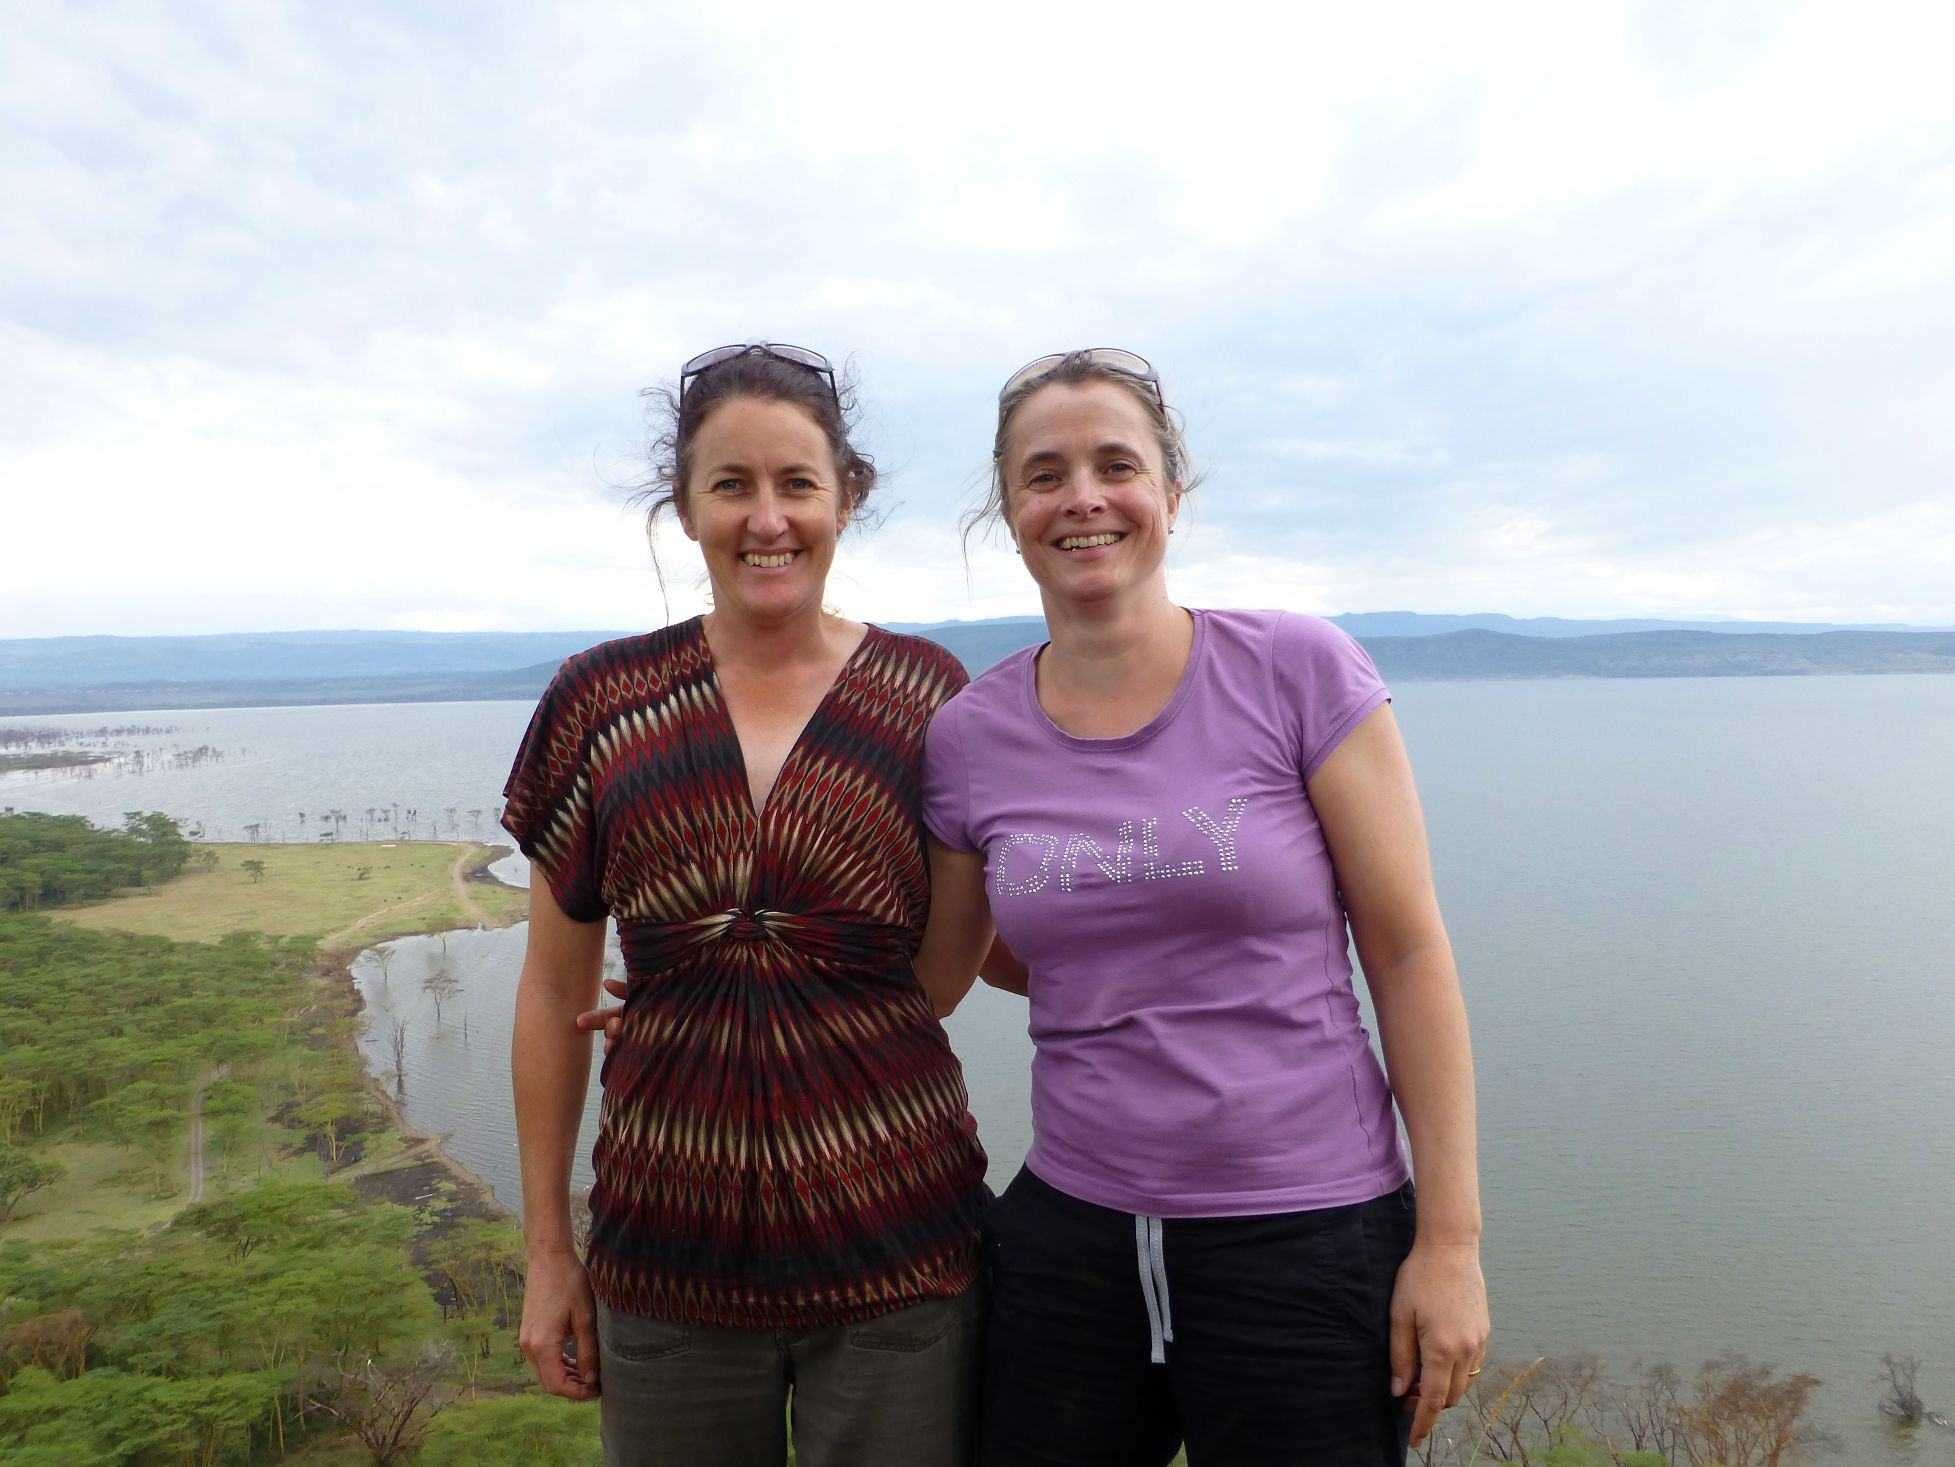 Kat and Jude on the monkey cliffs overlooking Lake Nakuru